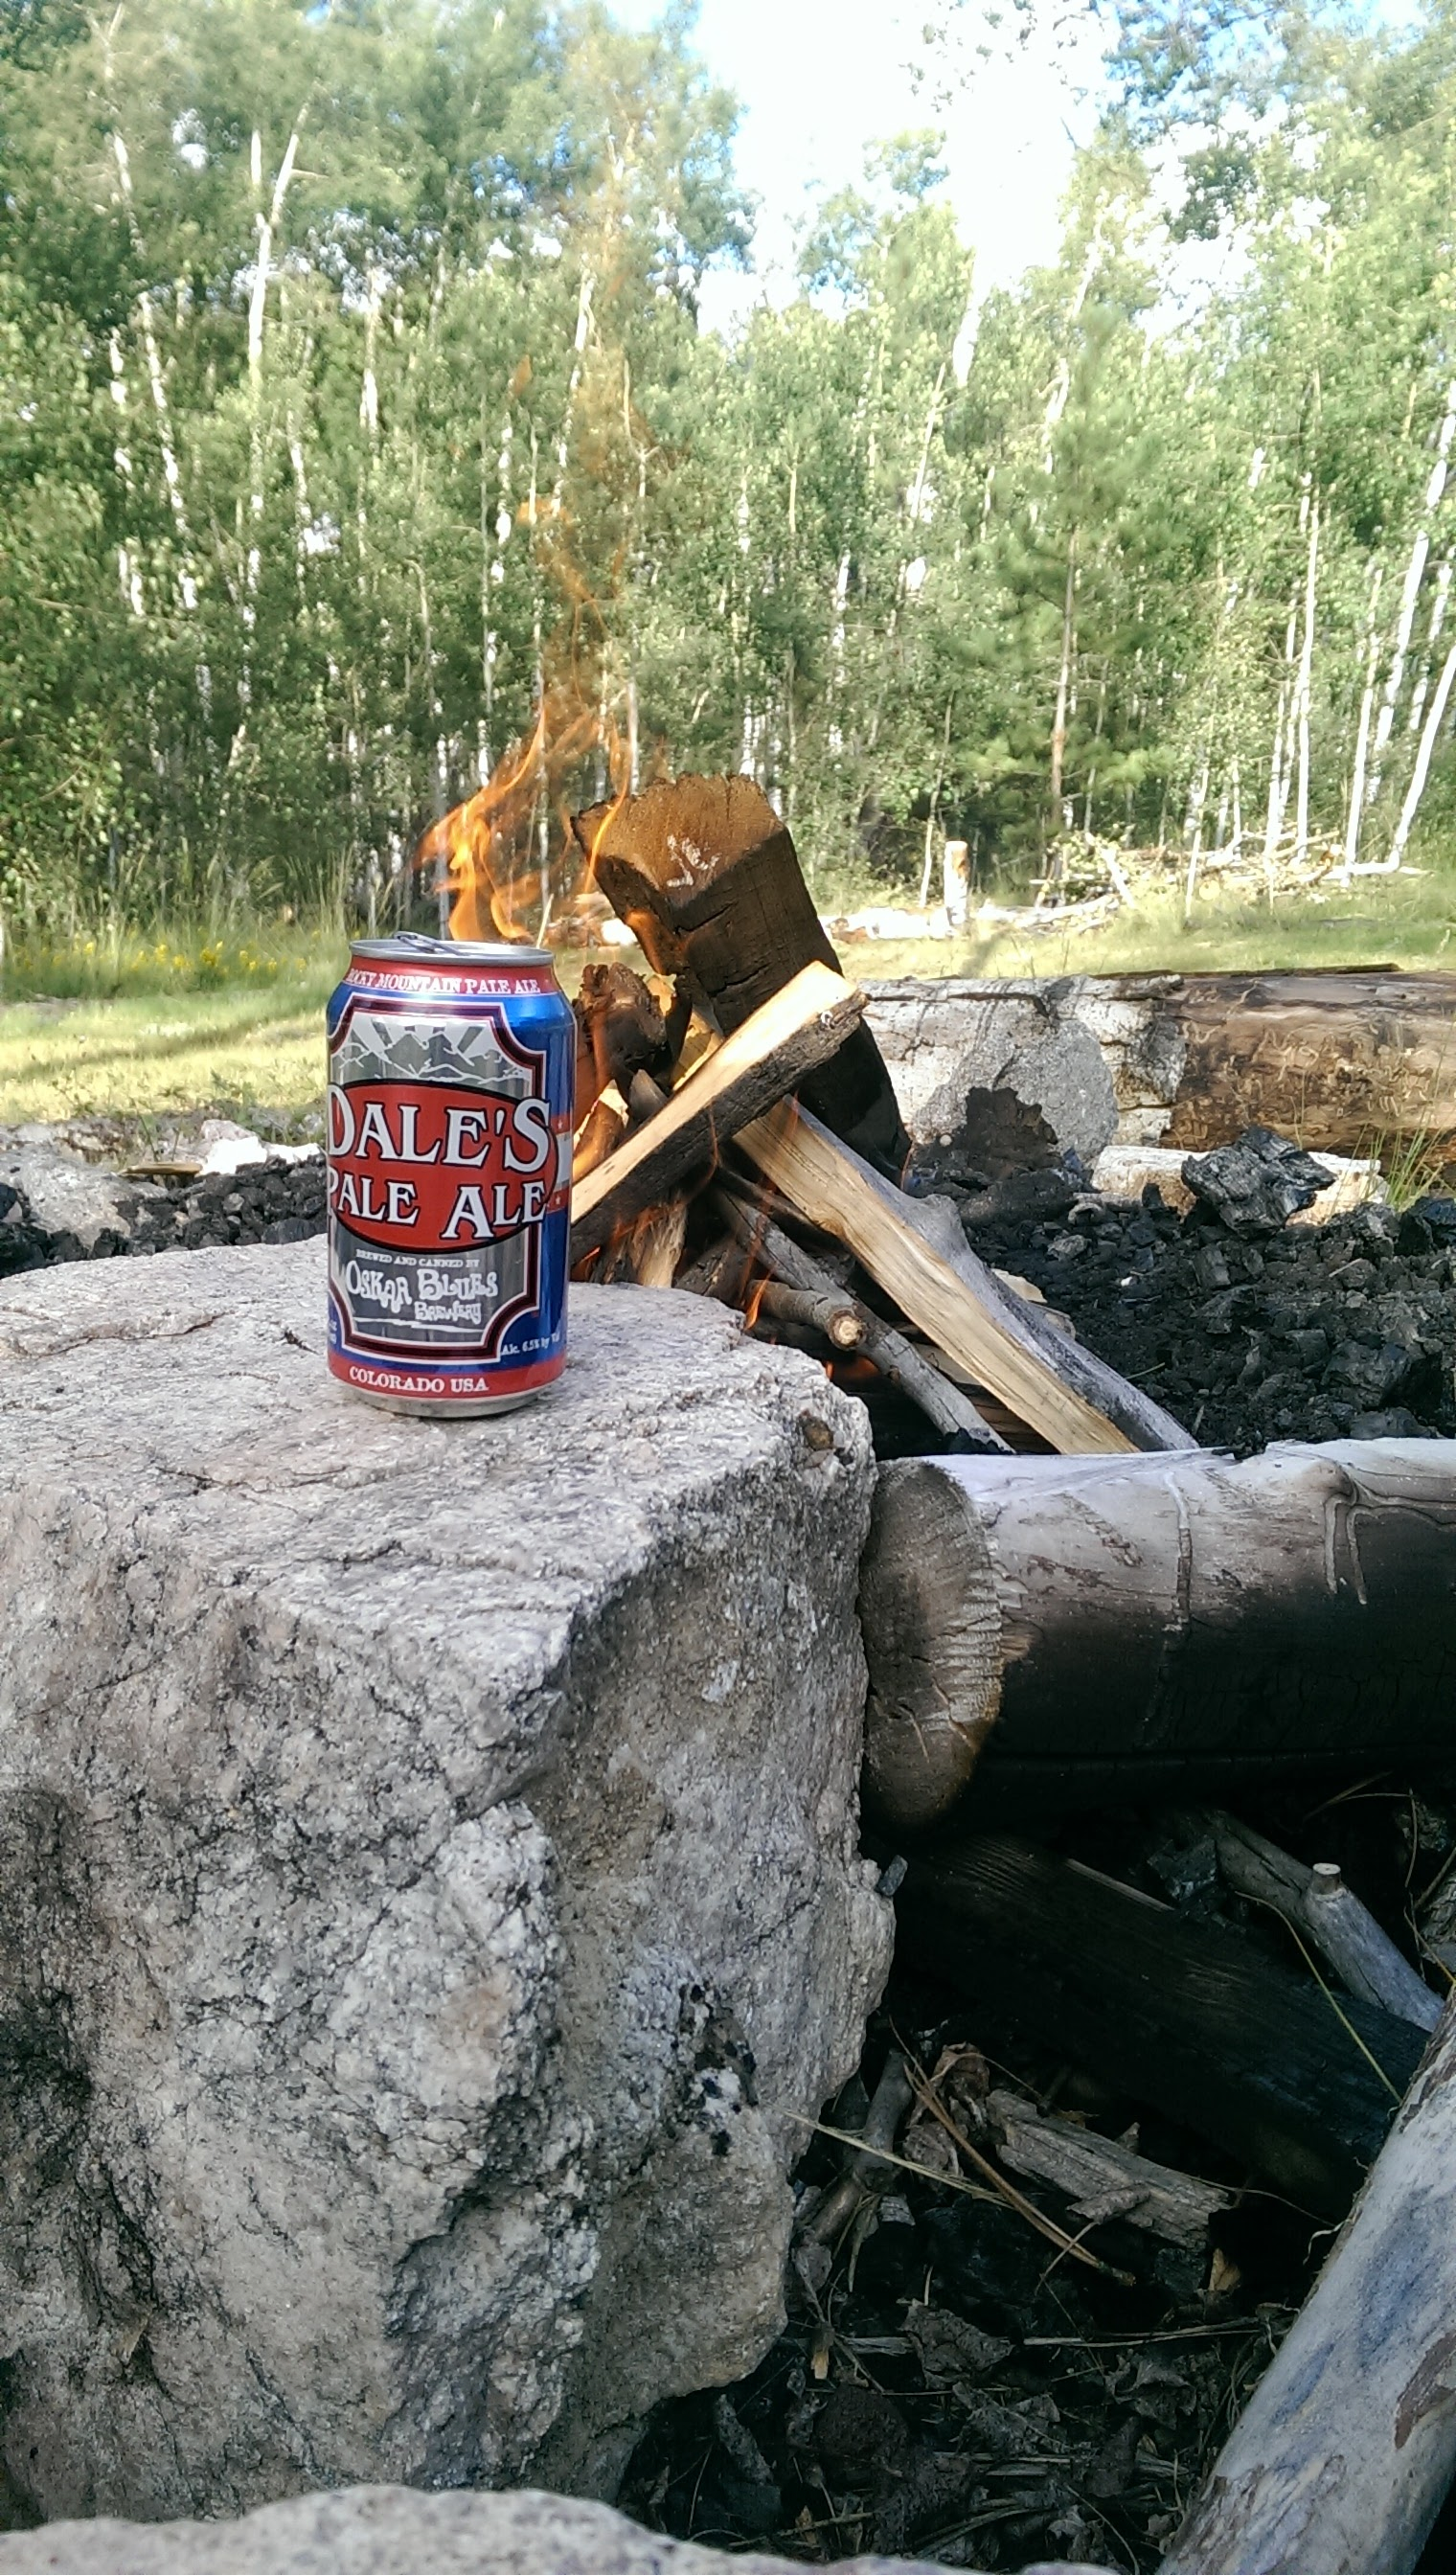 can of Dale's Pale Ale by a campfire